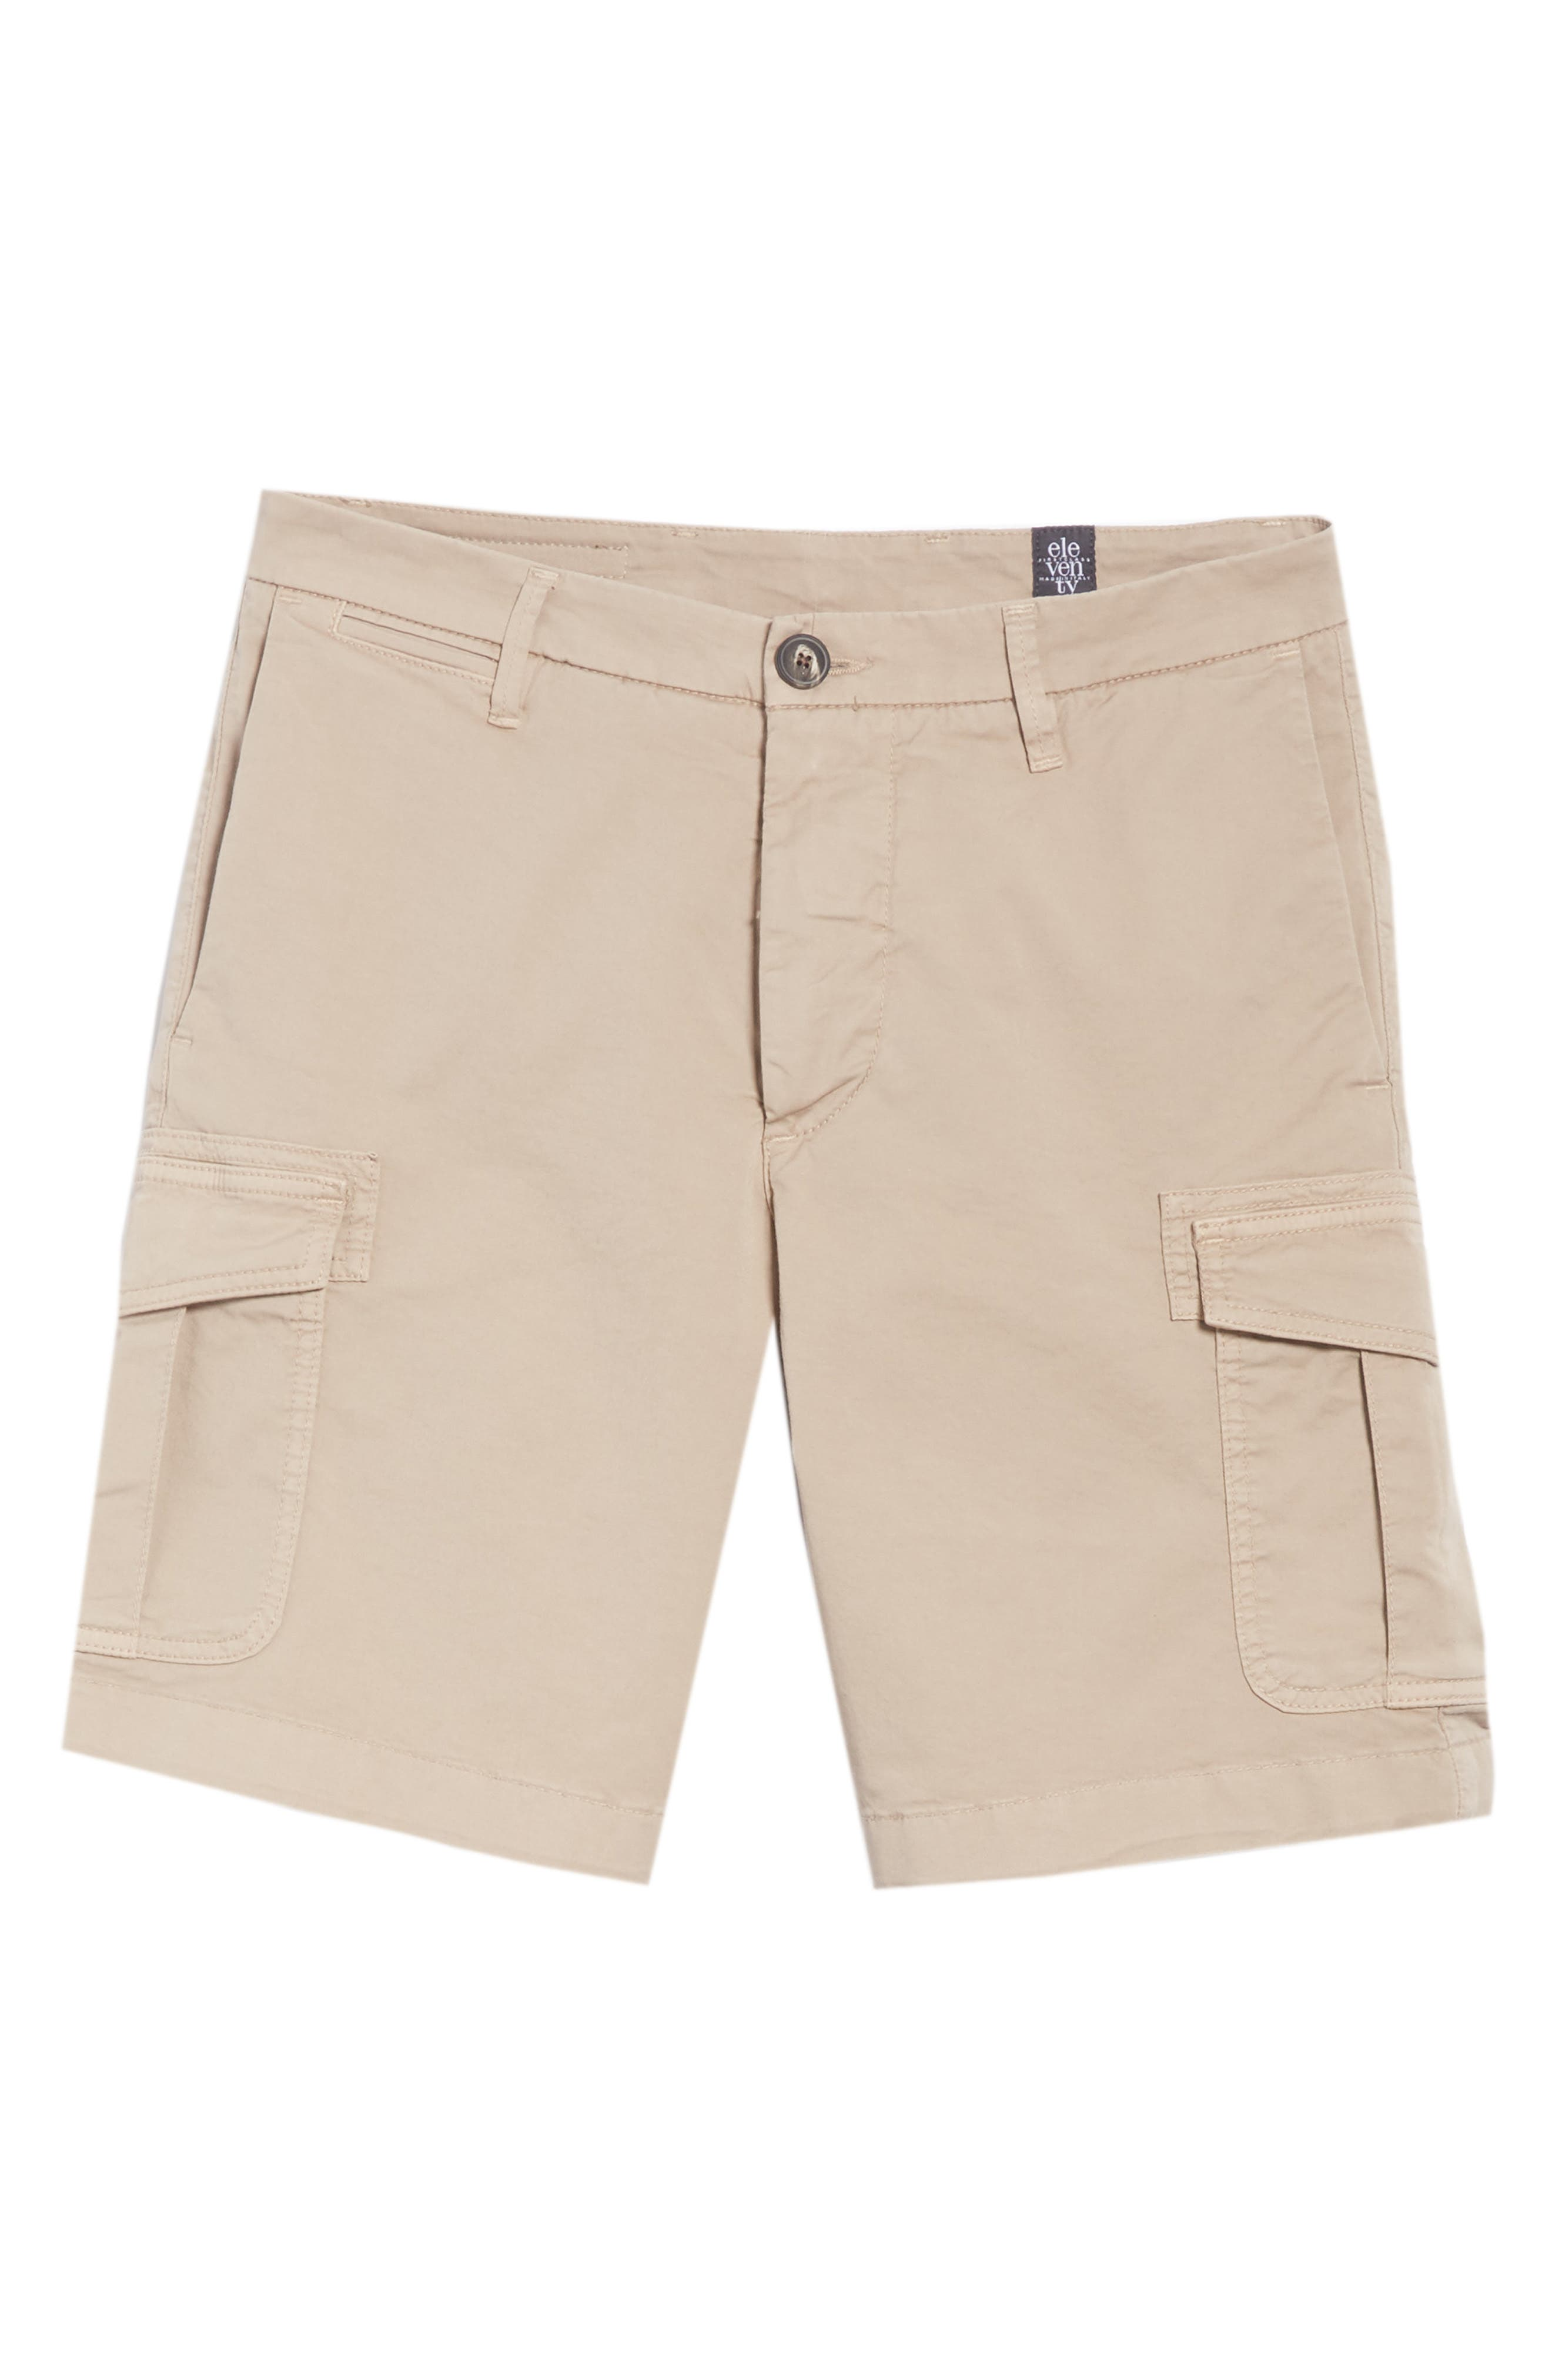 Stretch Cotton Cargo Shorts,                             Alternate thumbnail 6, color,                             250